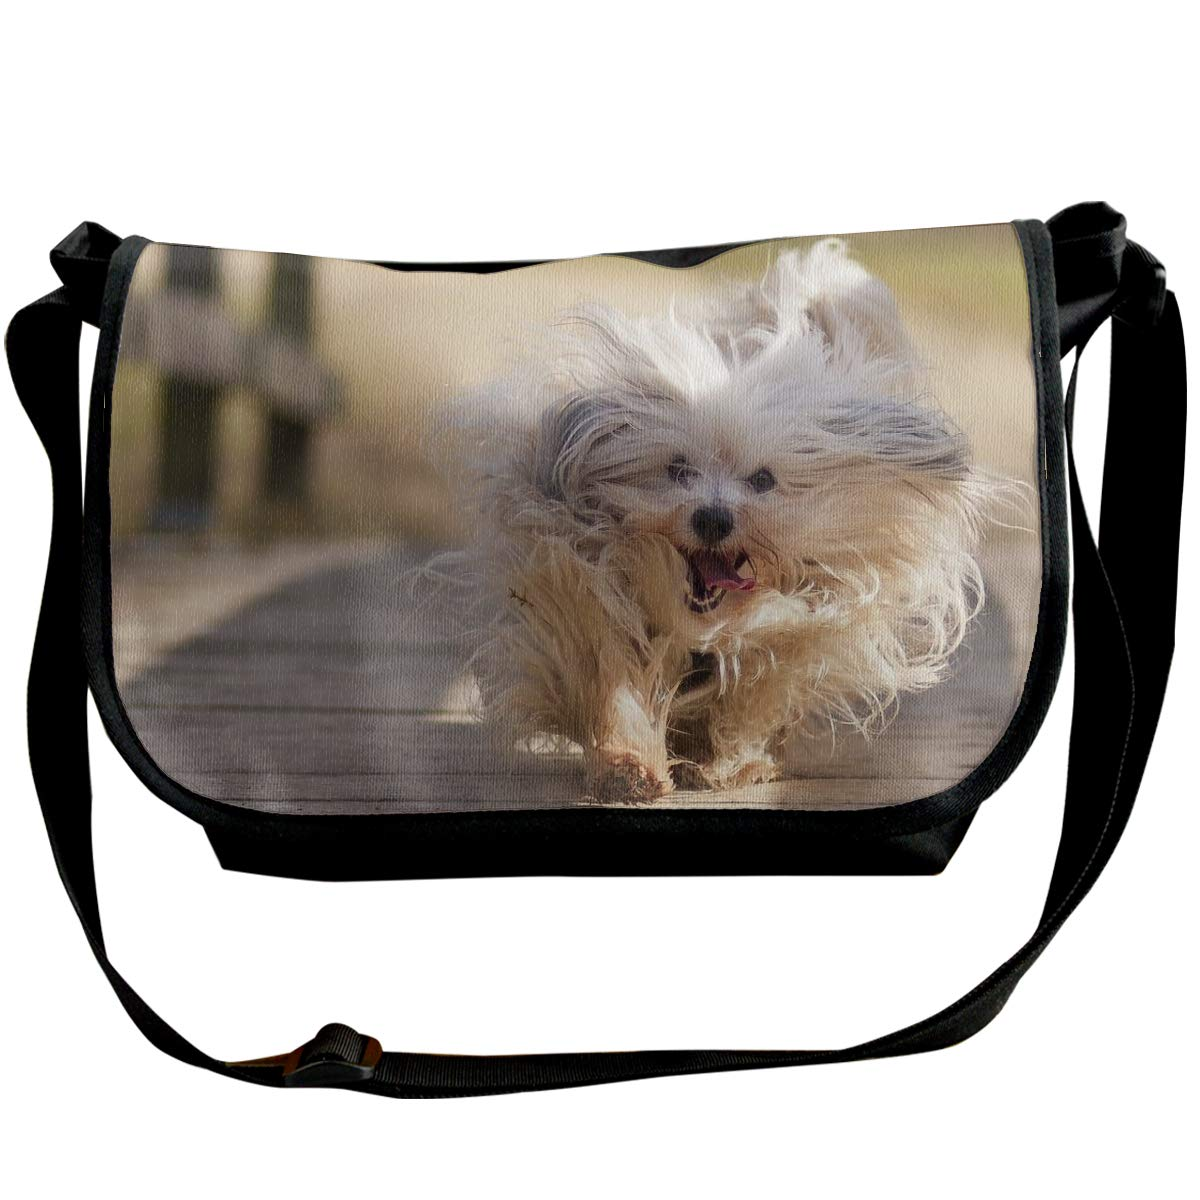 Taslilye Dog Fluffy Run Happy Running Customized Wide Crossbody Shoulder Bag For Men And Women For Daily Work Or Travel